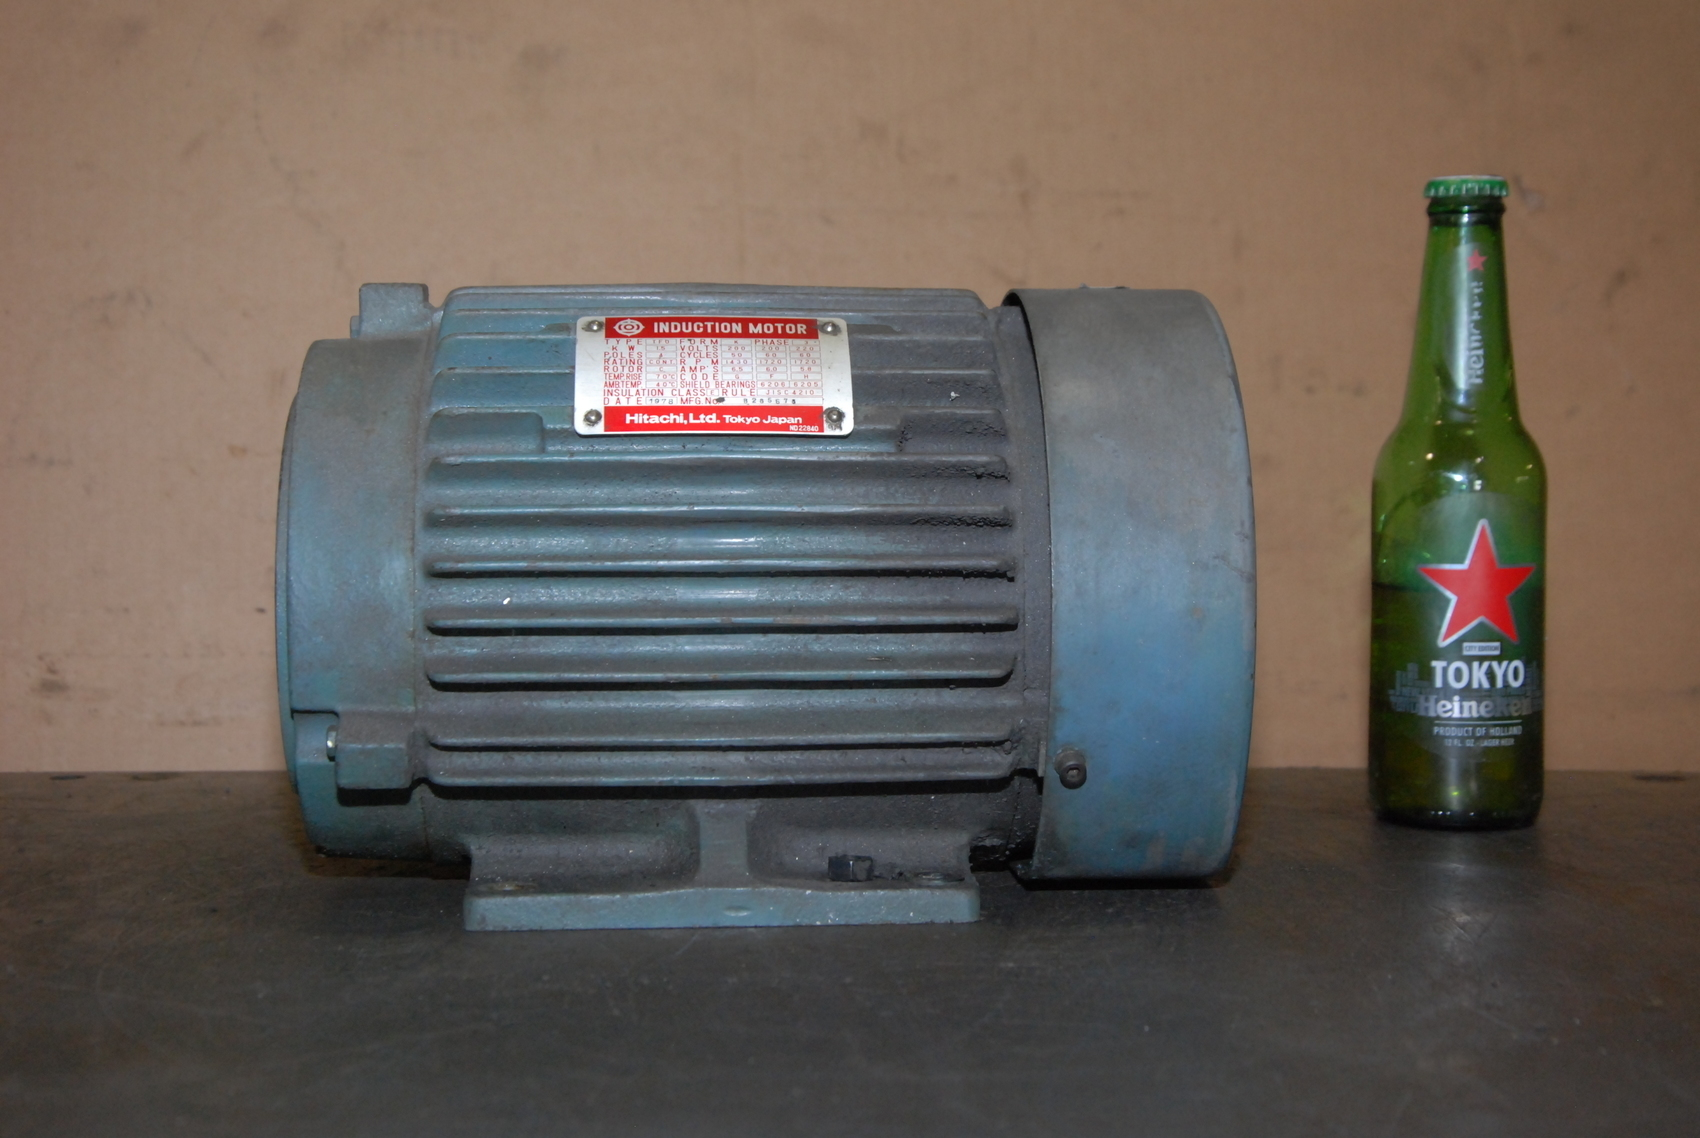 Hitachi 1 5kw Electric Motor 3 Phase 1430 1720 Rpm Hollow: 1 kw electric motor